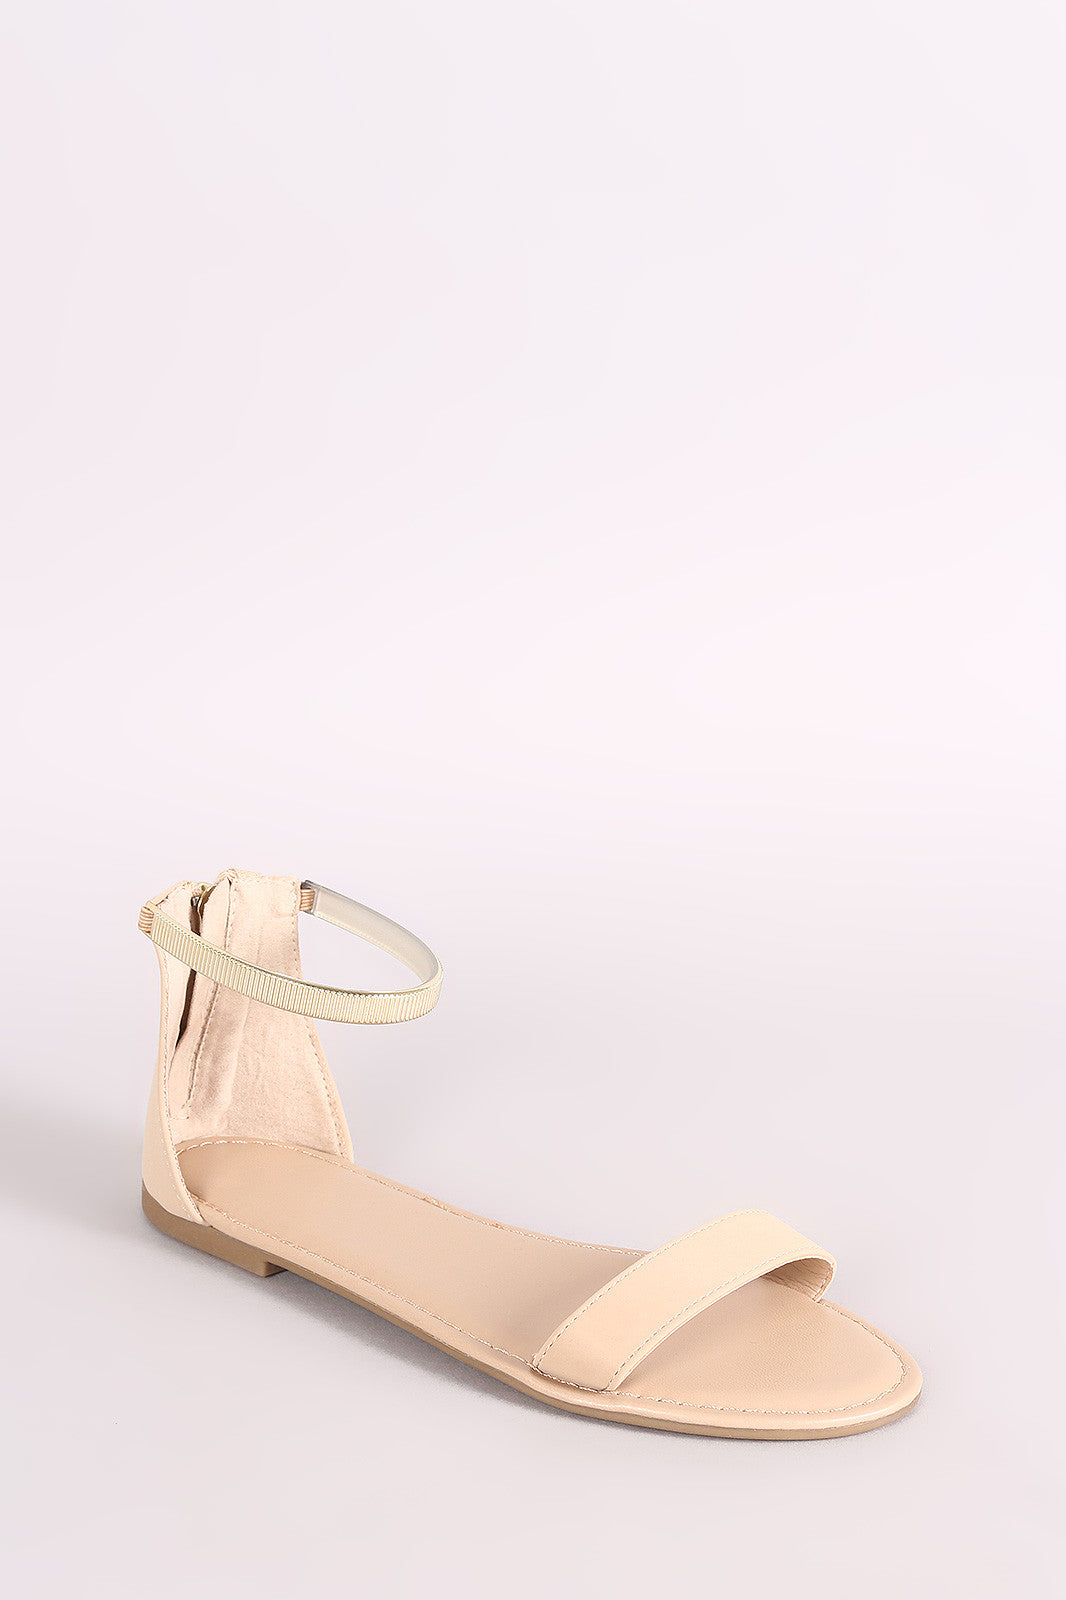 5b7132103bd Bamboo Nubuck One Band Ankle Strap Flat Sandal